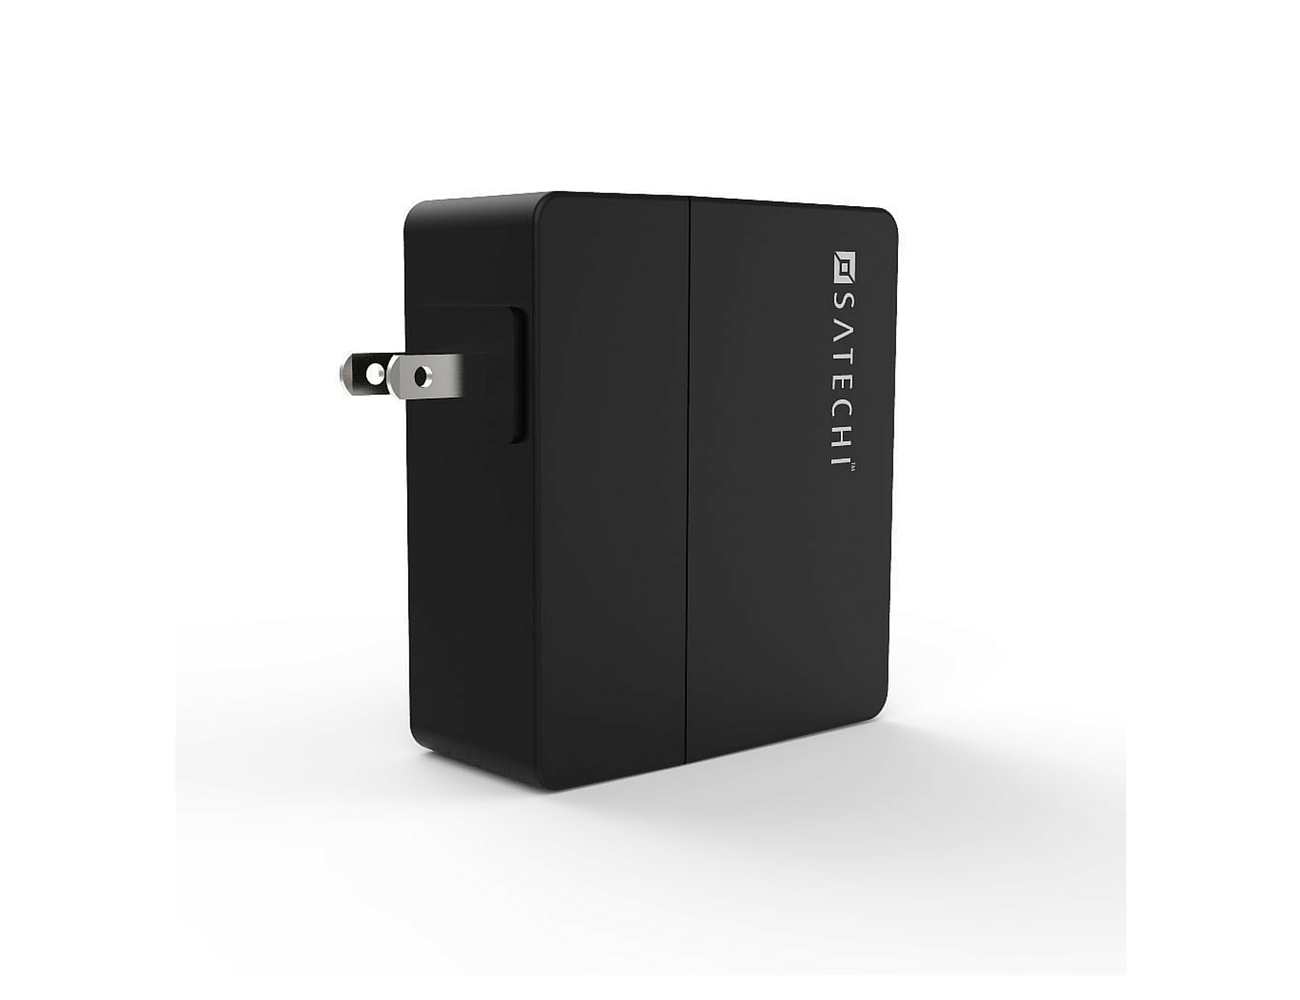 four-port-usb-charger-by-satechi-01